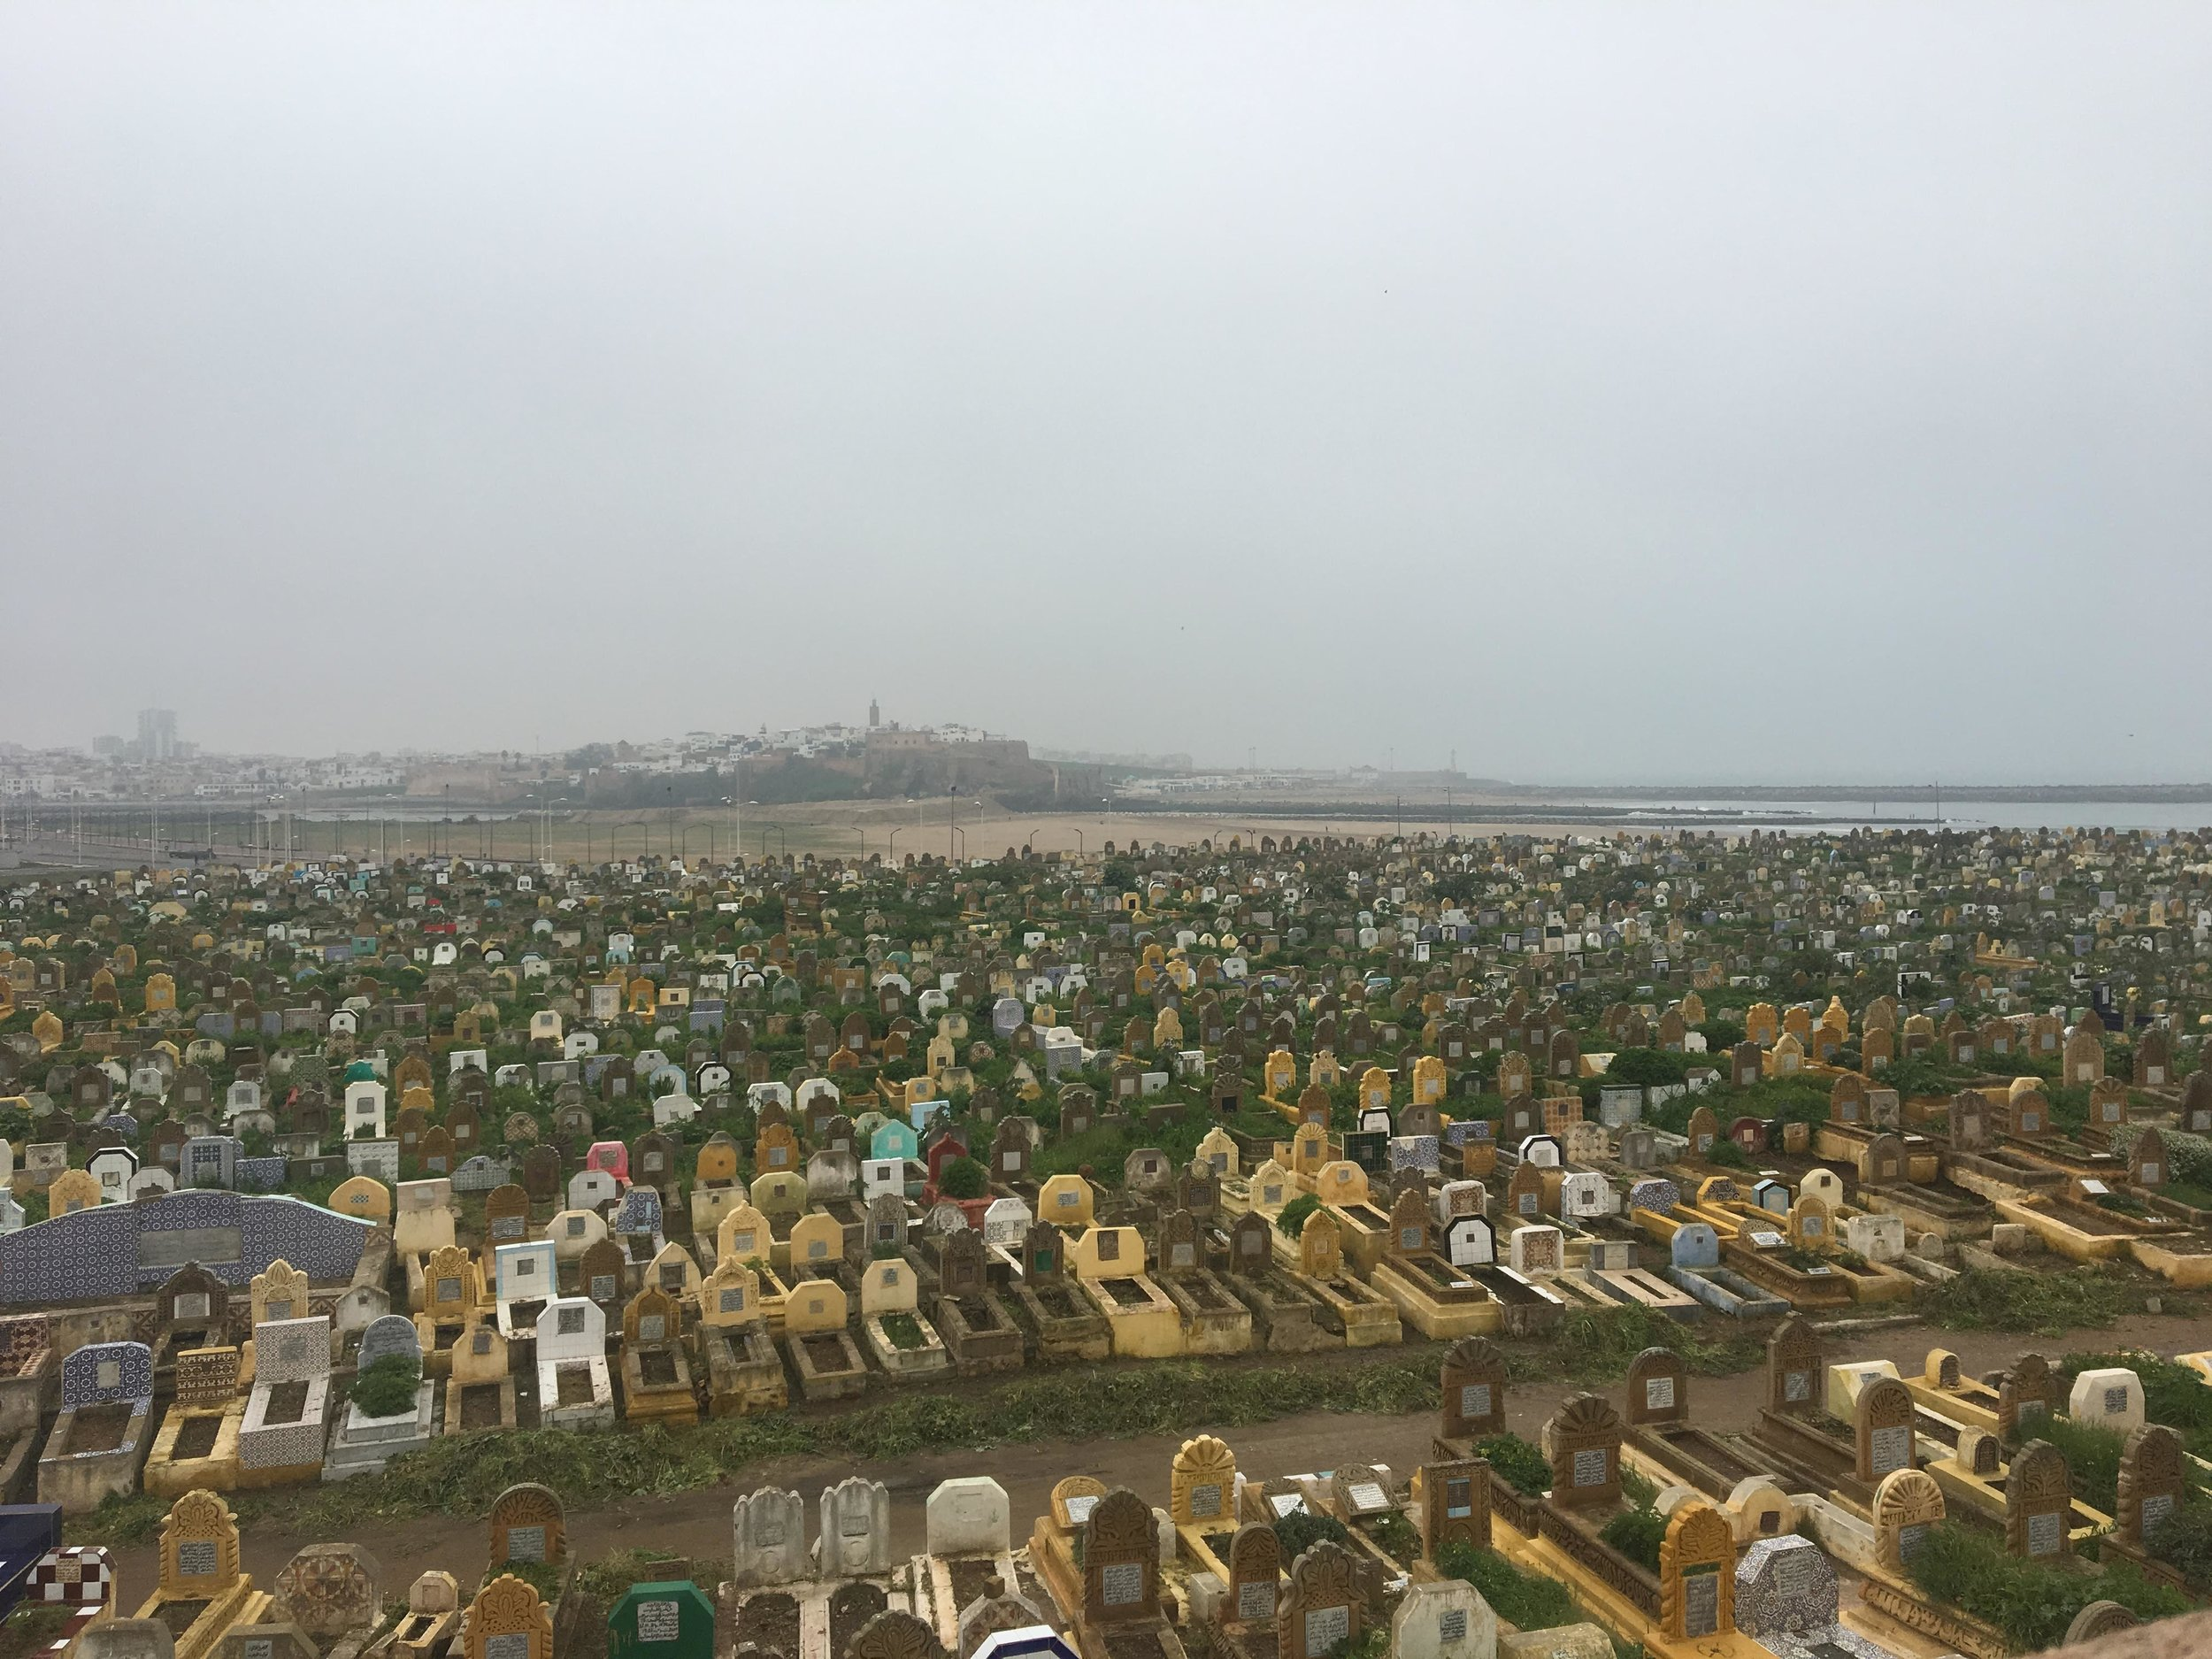 Just across the river from Rabat, Sale is decorated with history and brilliant with activity. The cemetery stretches along the river, and Rabat is visible from afar. Photo credit: Fisher, 2019